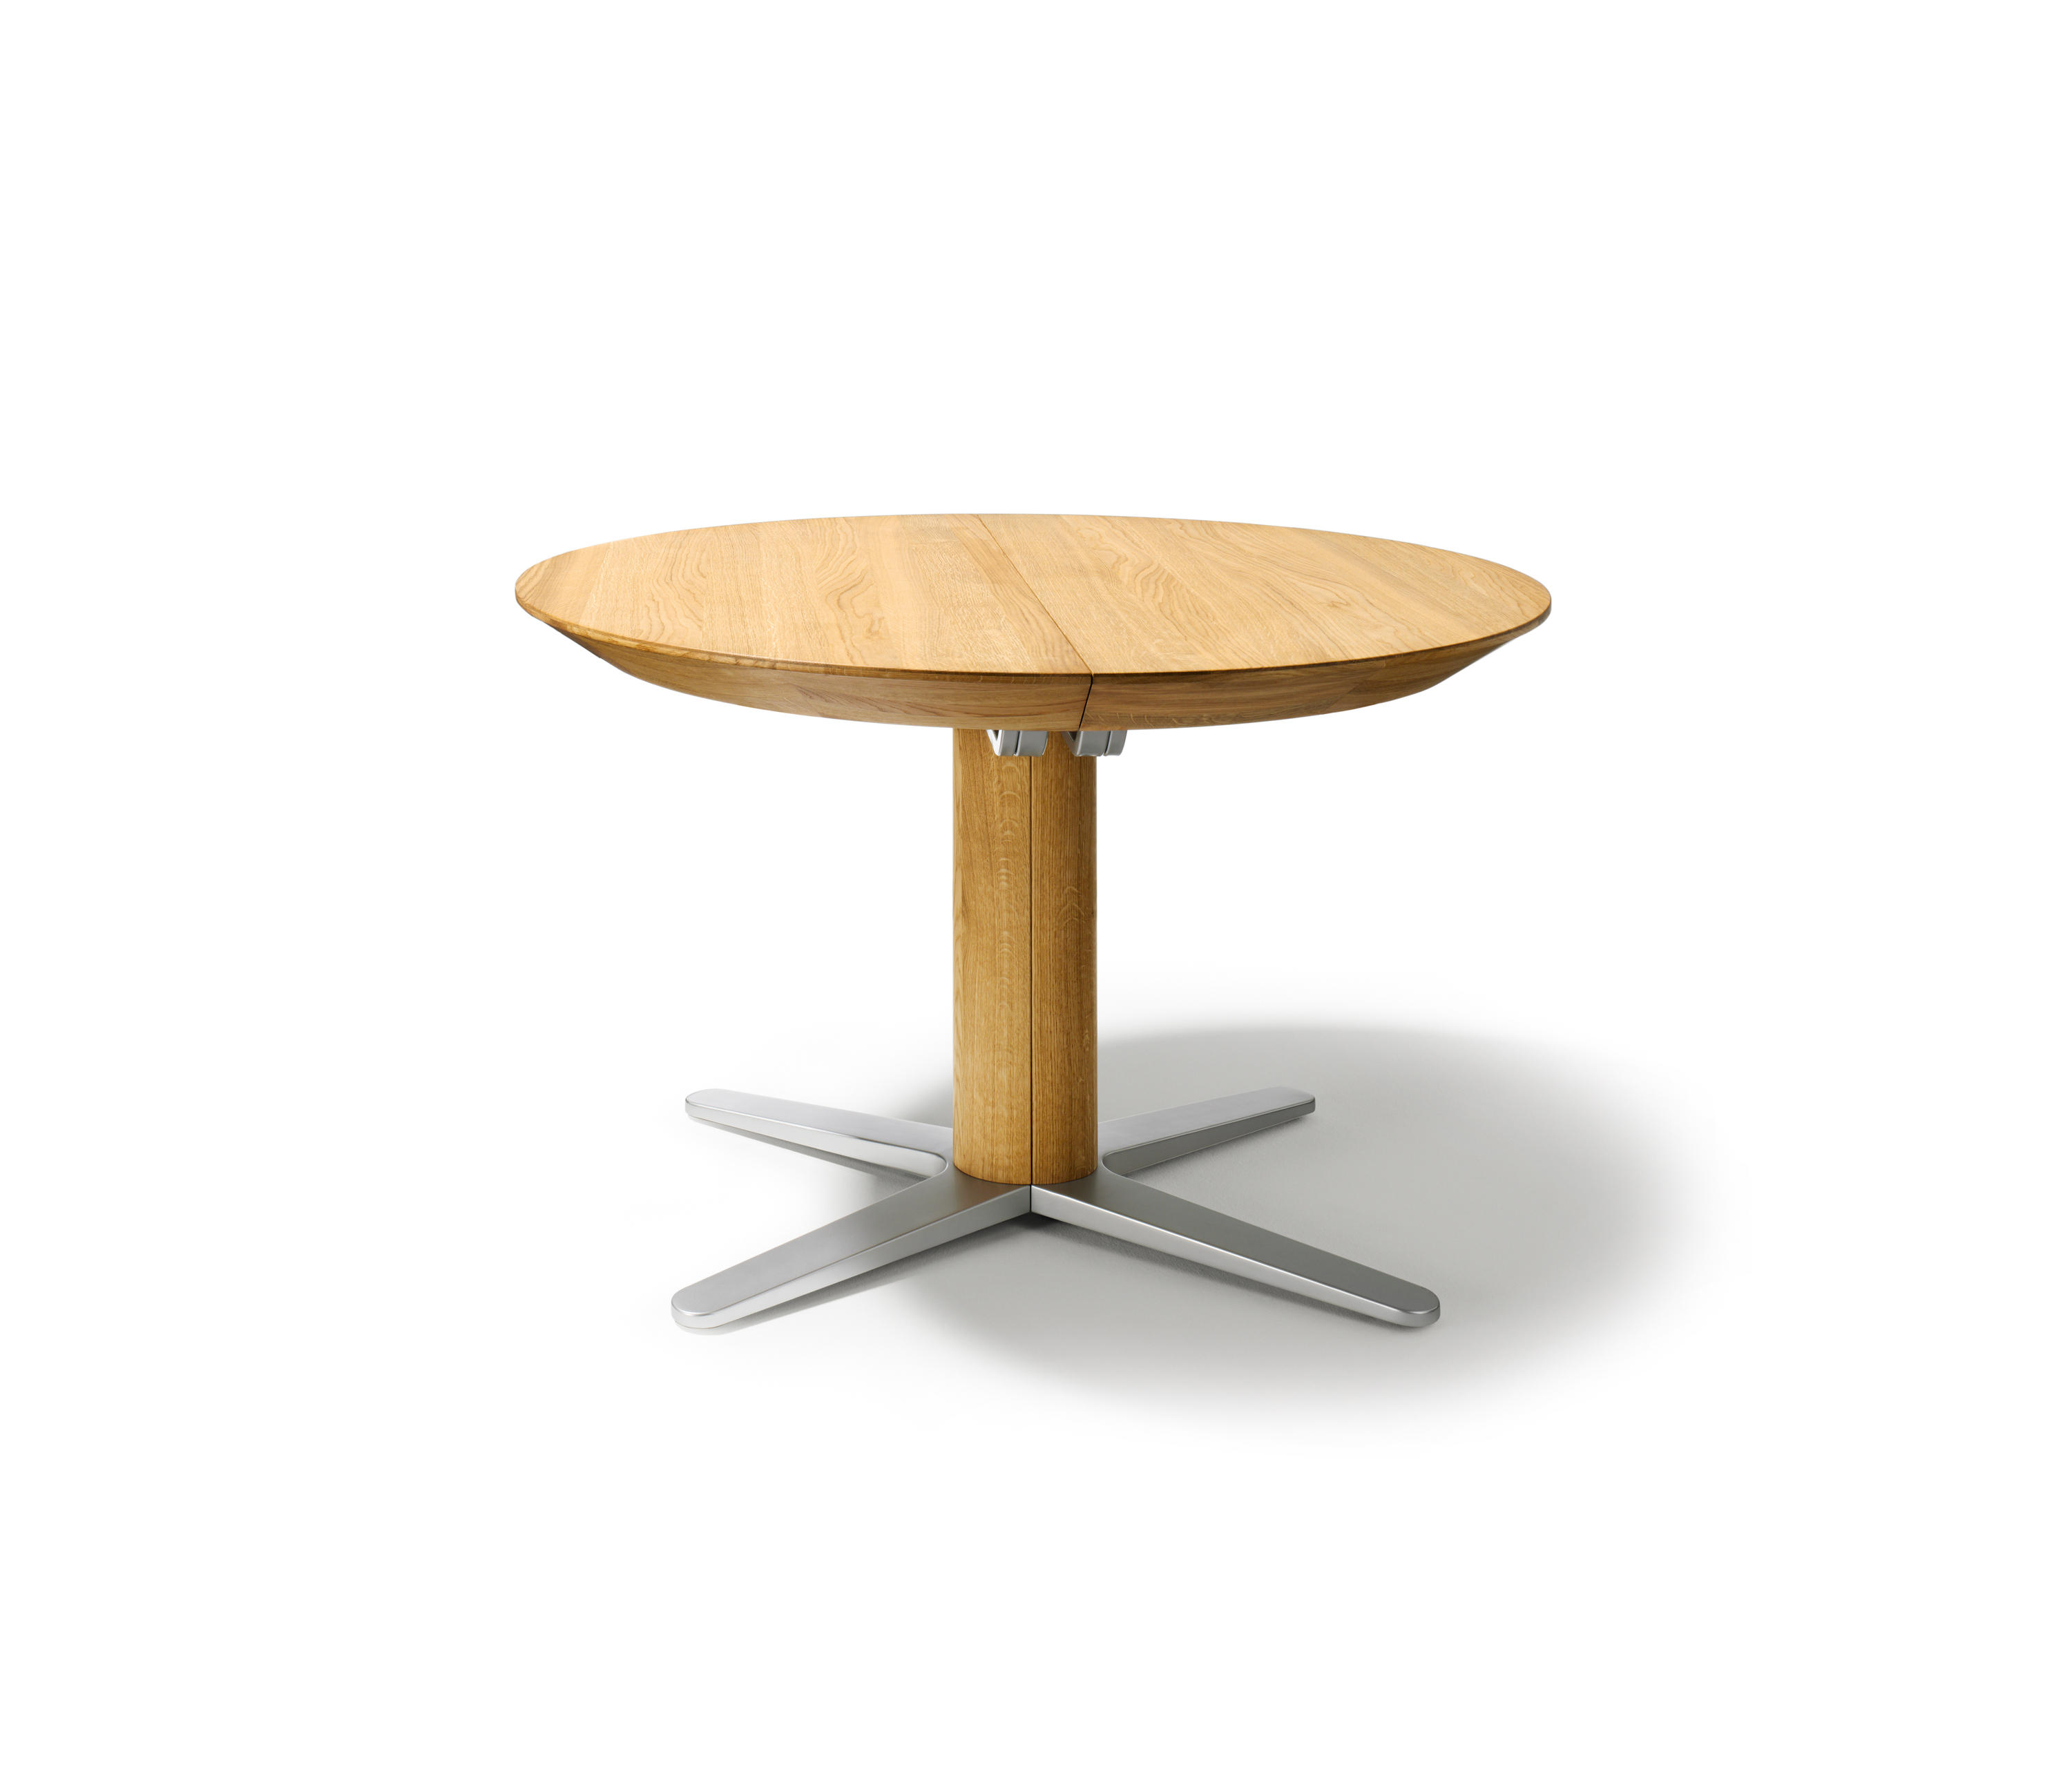 Team 7 Couchtisch Juwel Oval Girado Extension Table Dining Tables From Team 7 Architonic